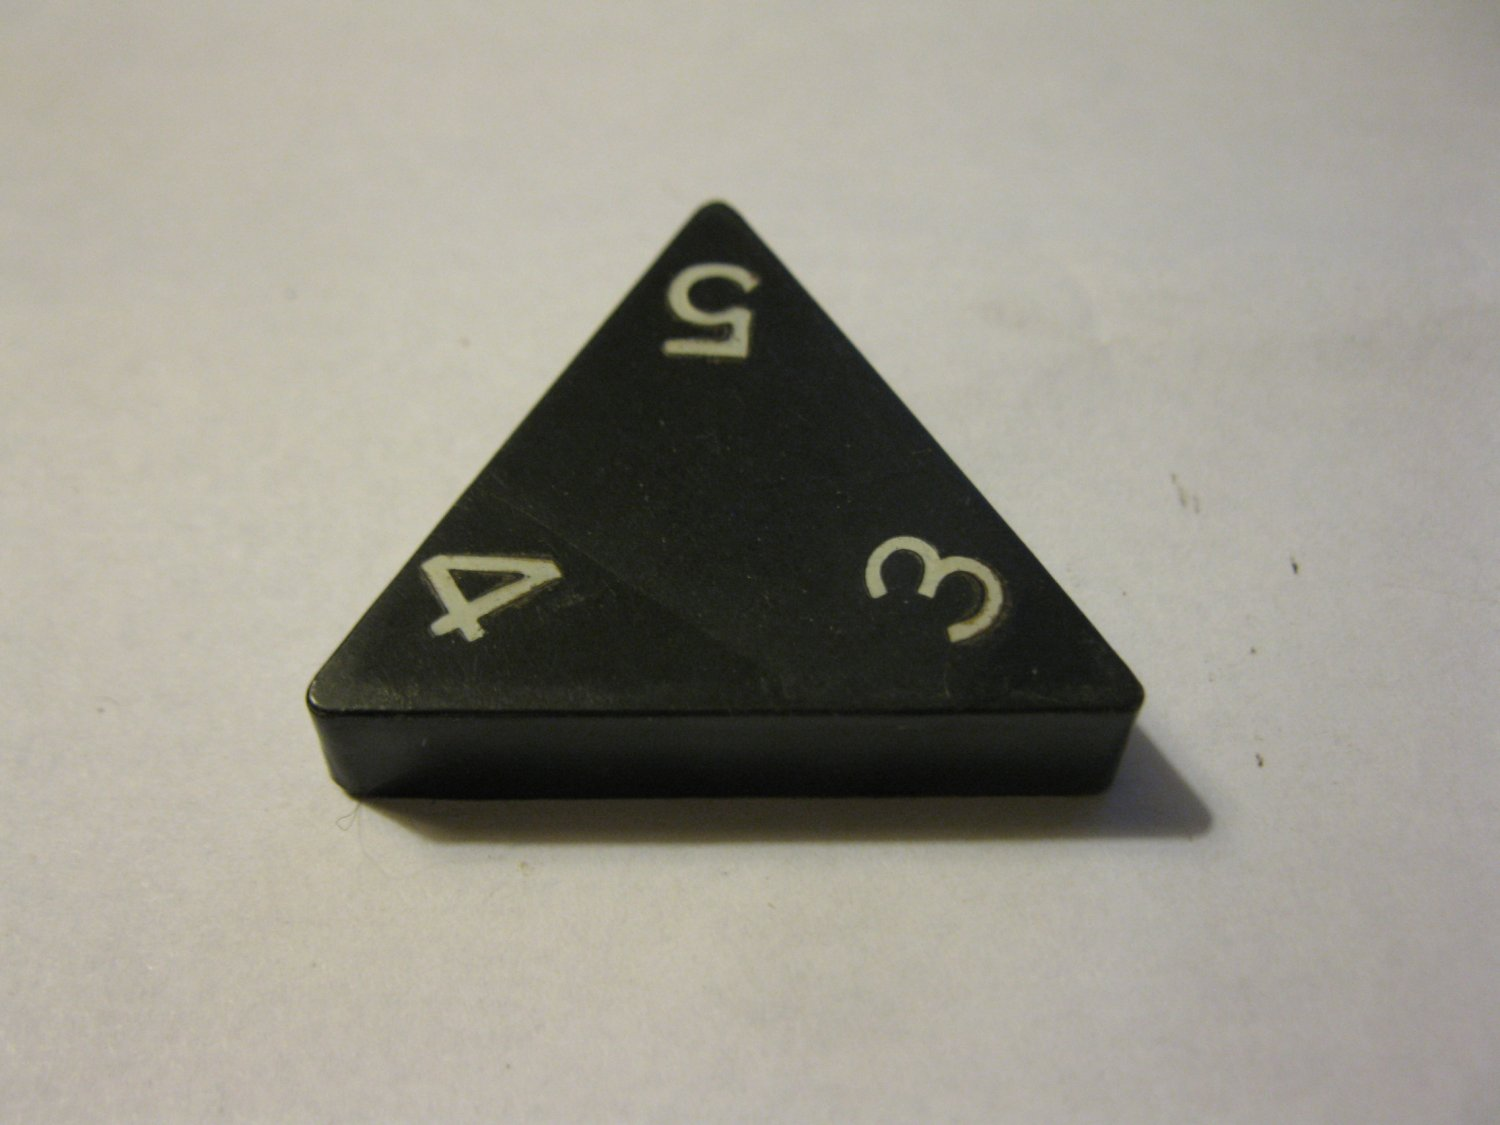 1985 Tri-ominoes Board Game Piece: Triangle # 3-4-5